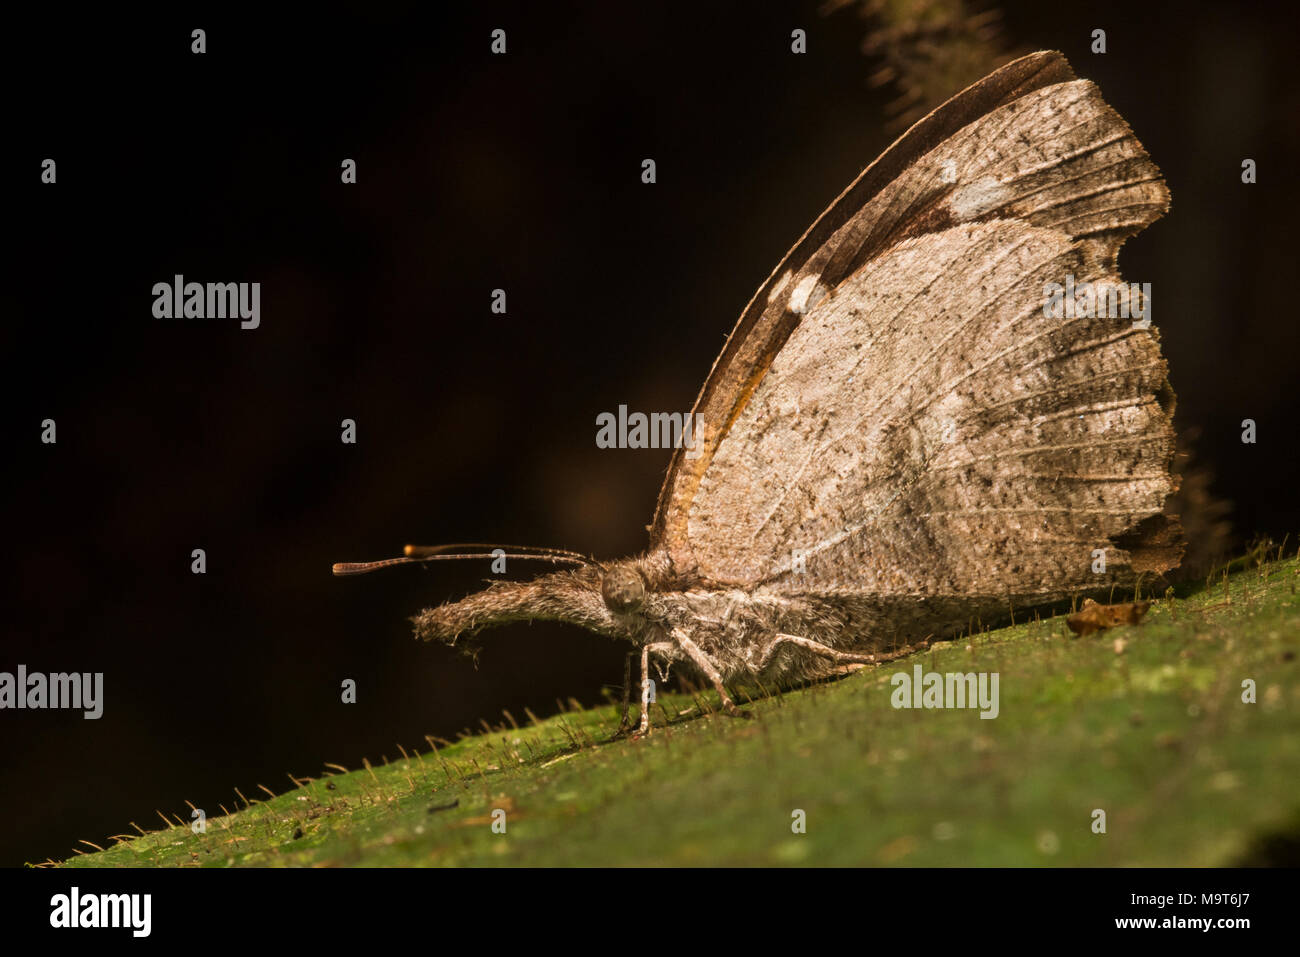 A snout butterfly from Peru, this is potentially the American snout (Libytheana carinenta). These head shape/snout of the butterflies is very unusual. - Stock Image